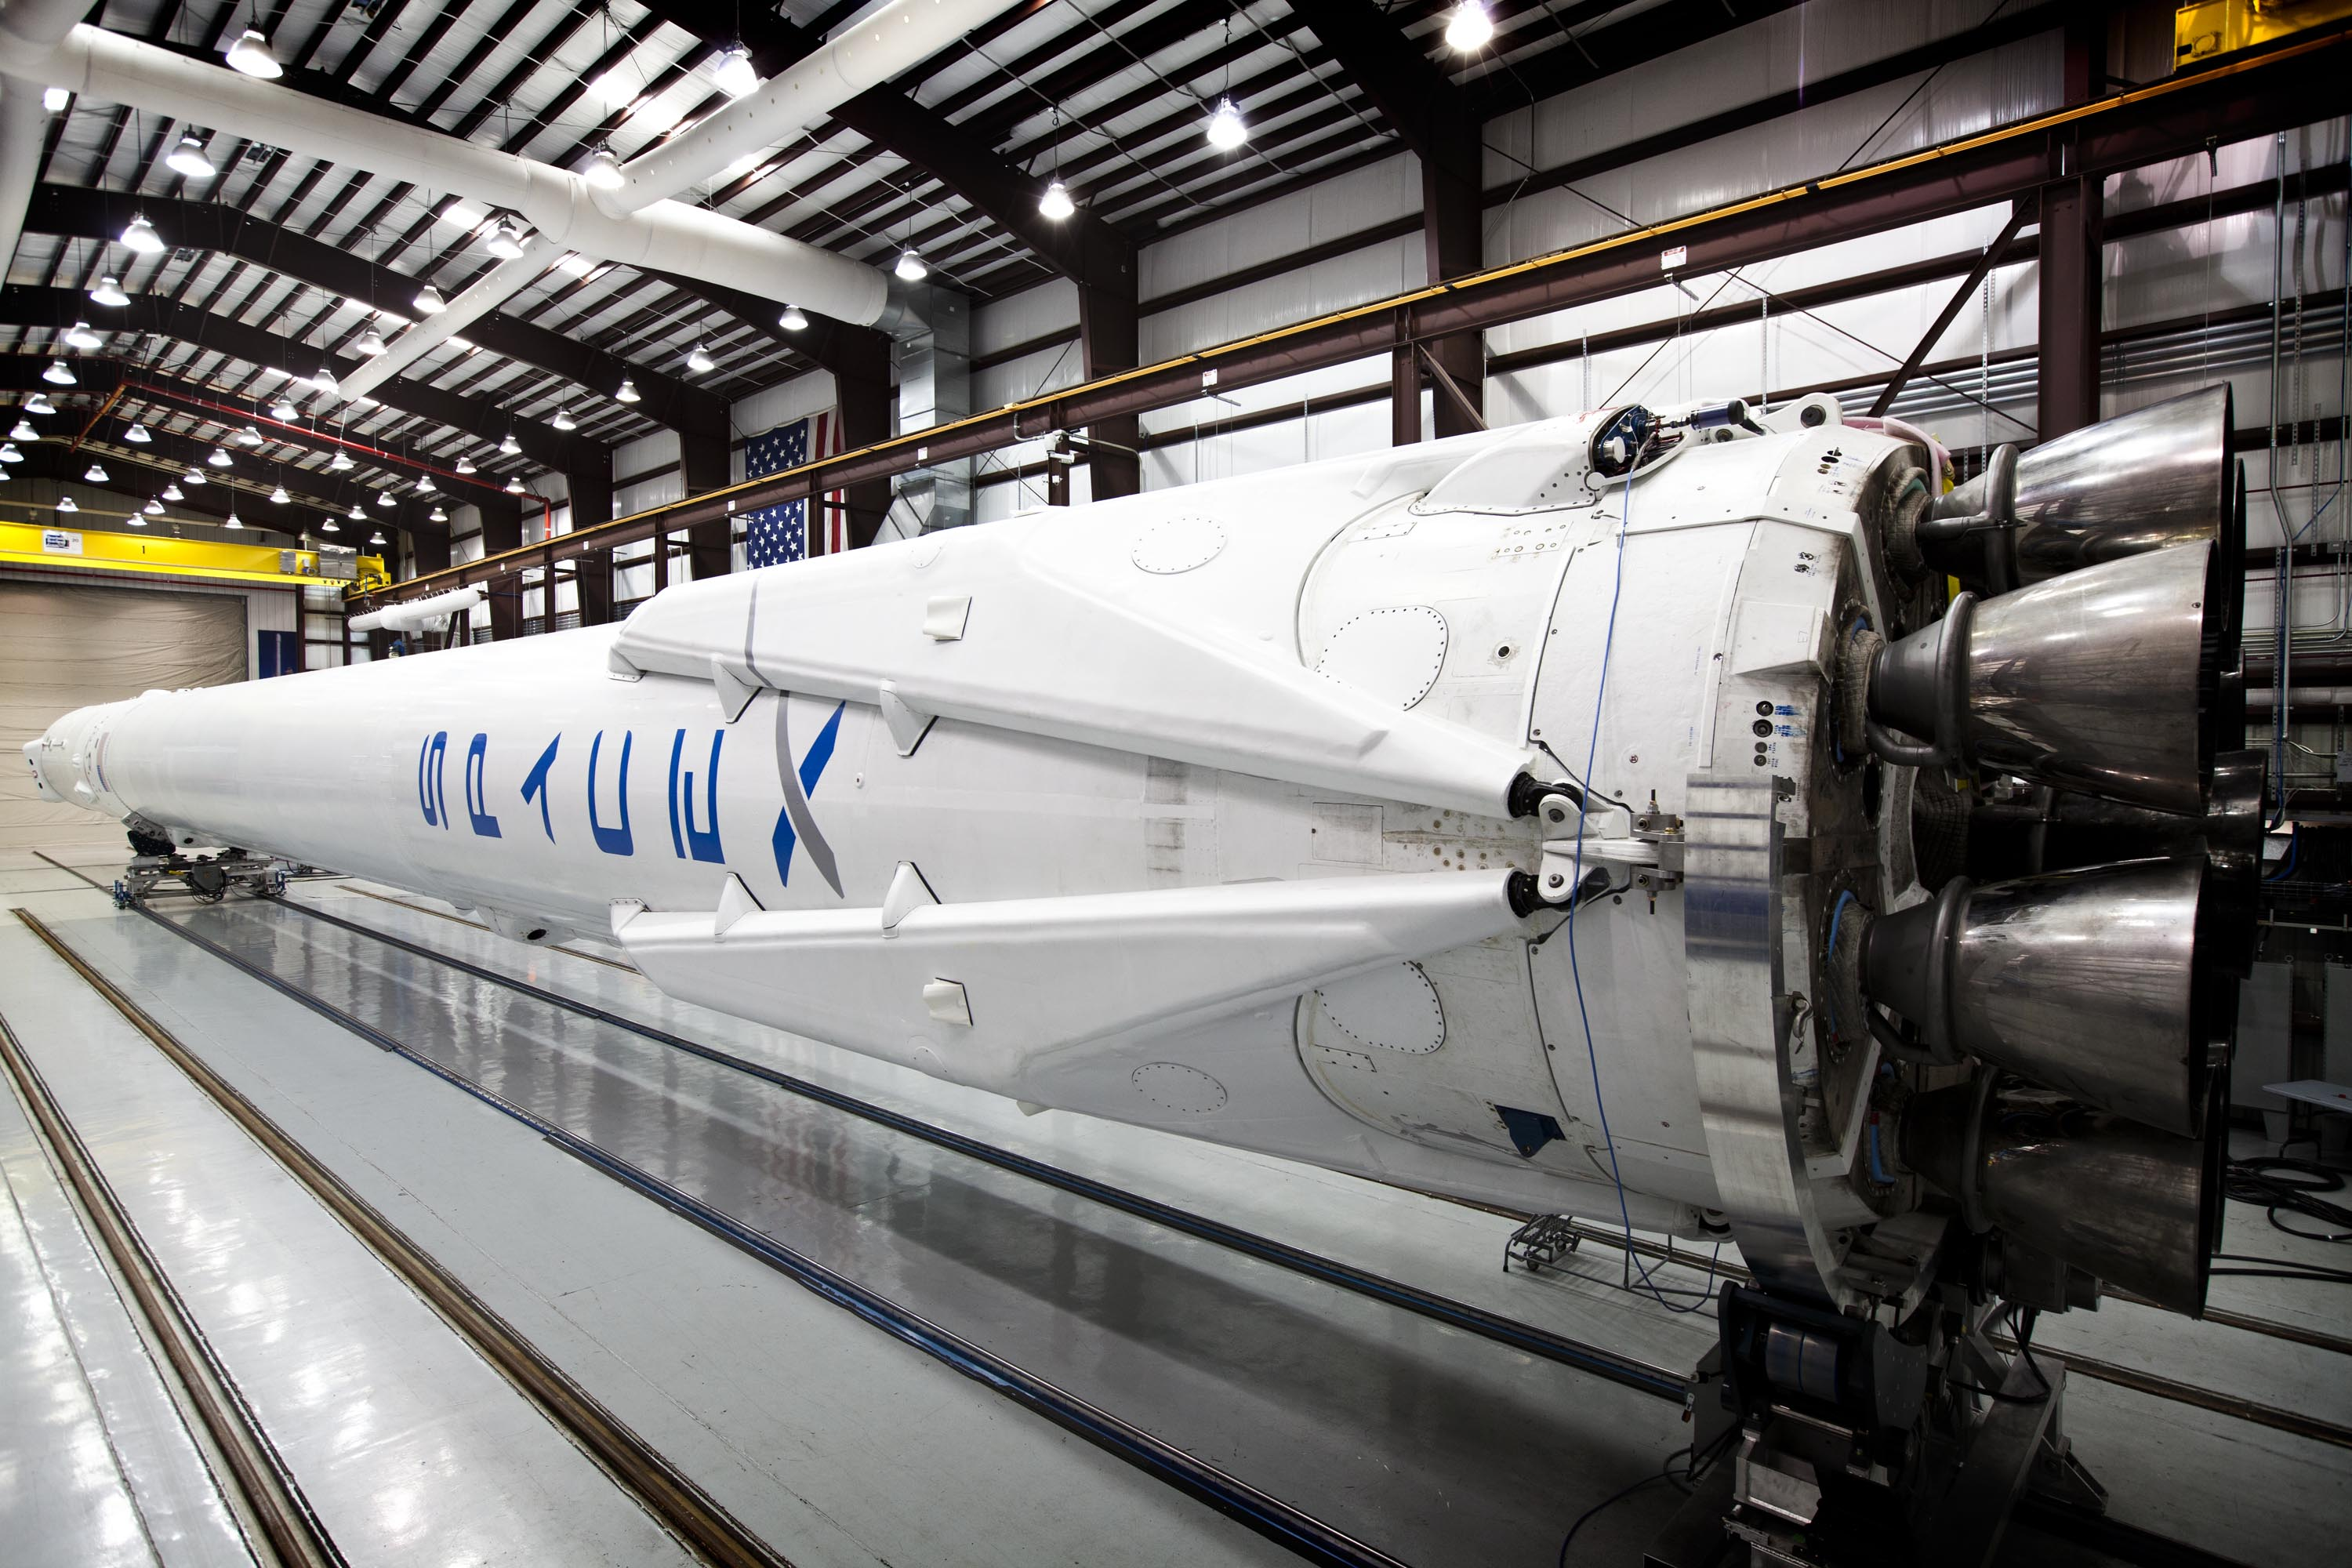 spacex dragon rocket in hanger - photo #16